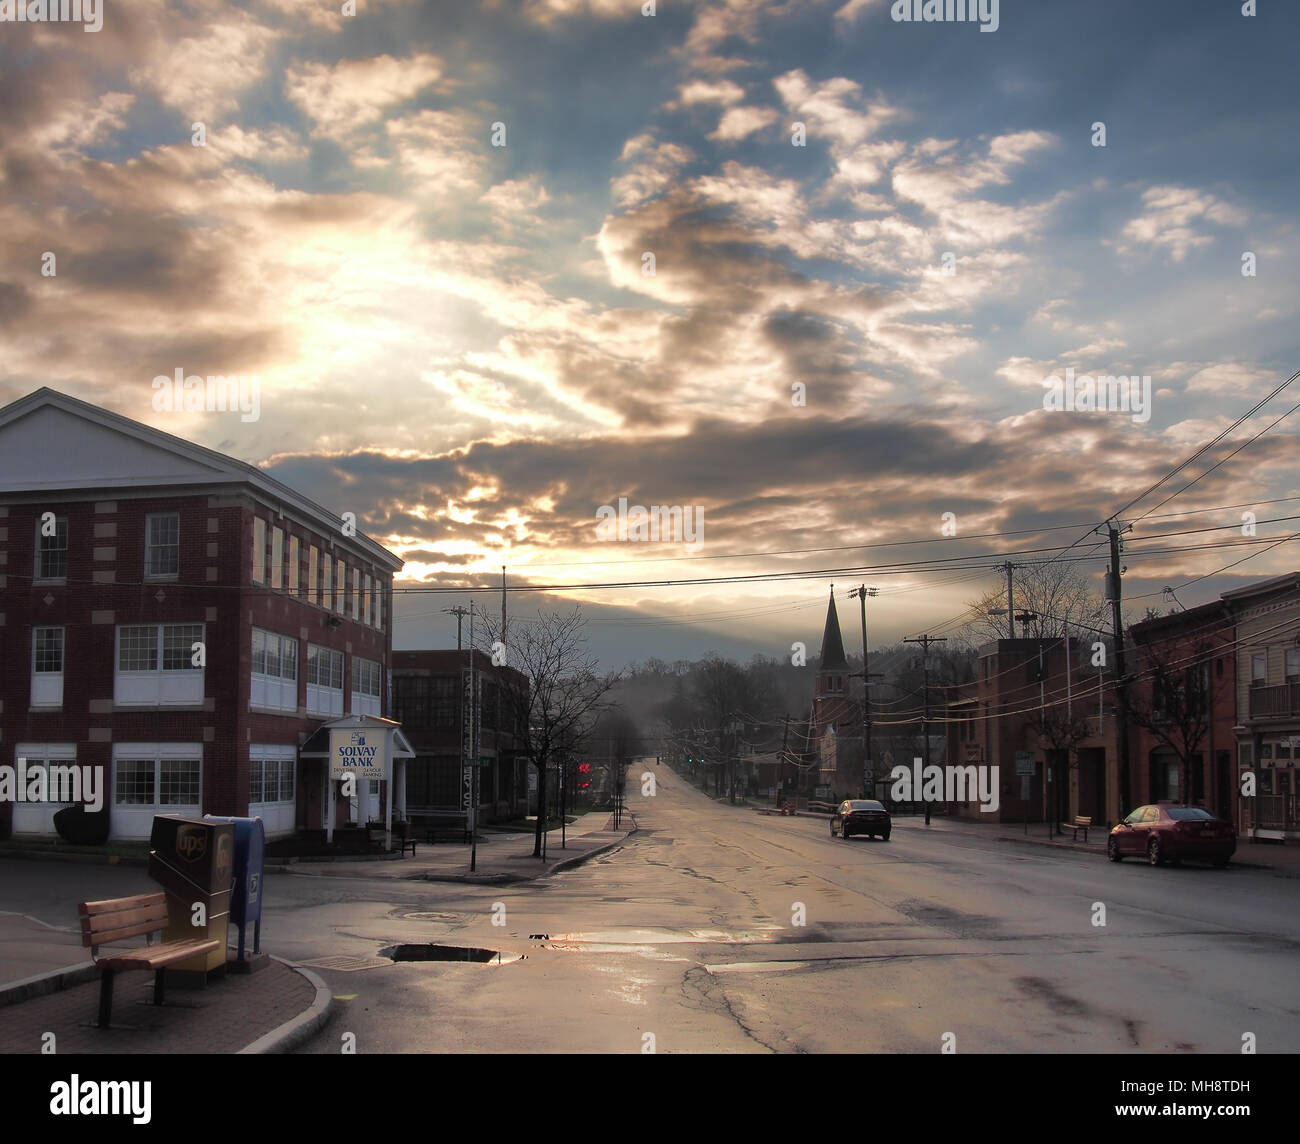 Camillus, New York, USA.  April 28, 2018. Small town of Camillus , NY, in upstate New York , early morning after a rain shower Stock Photo